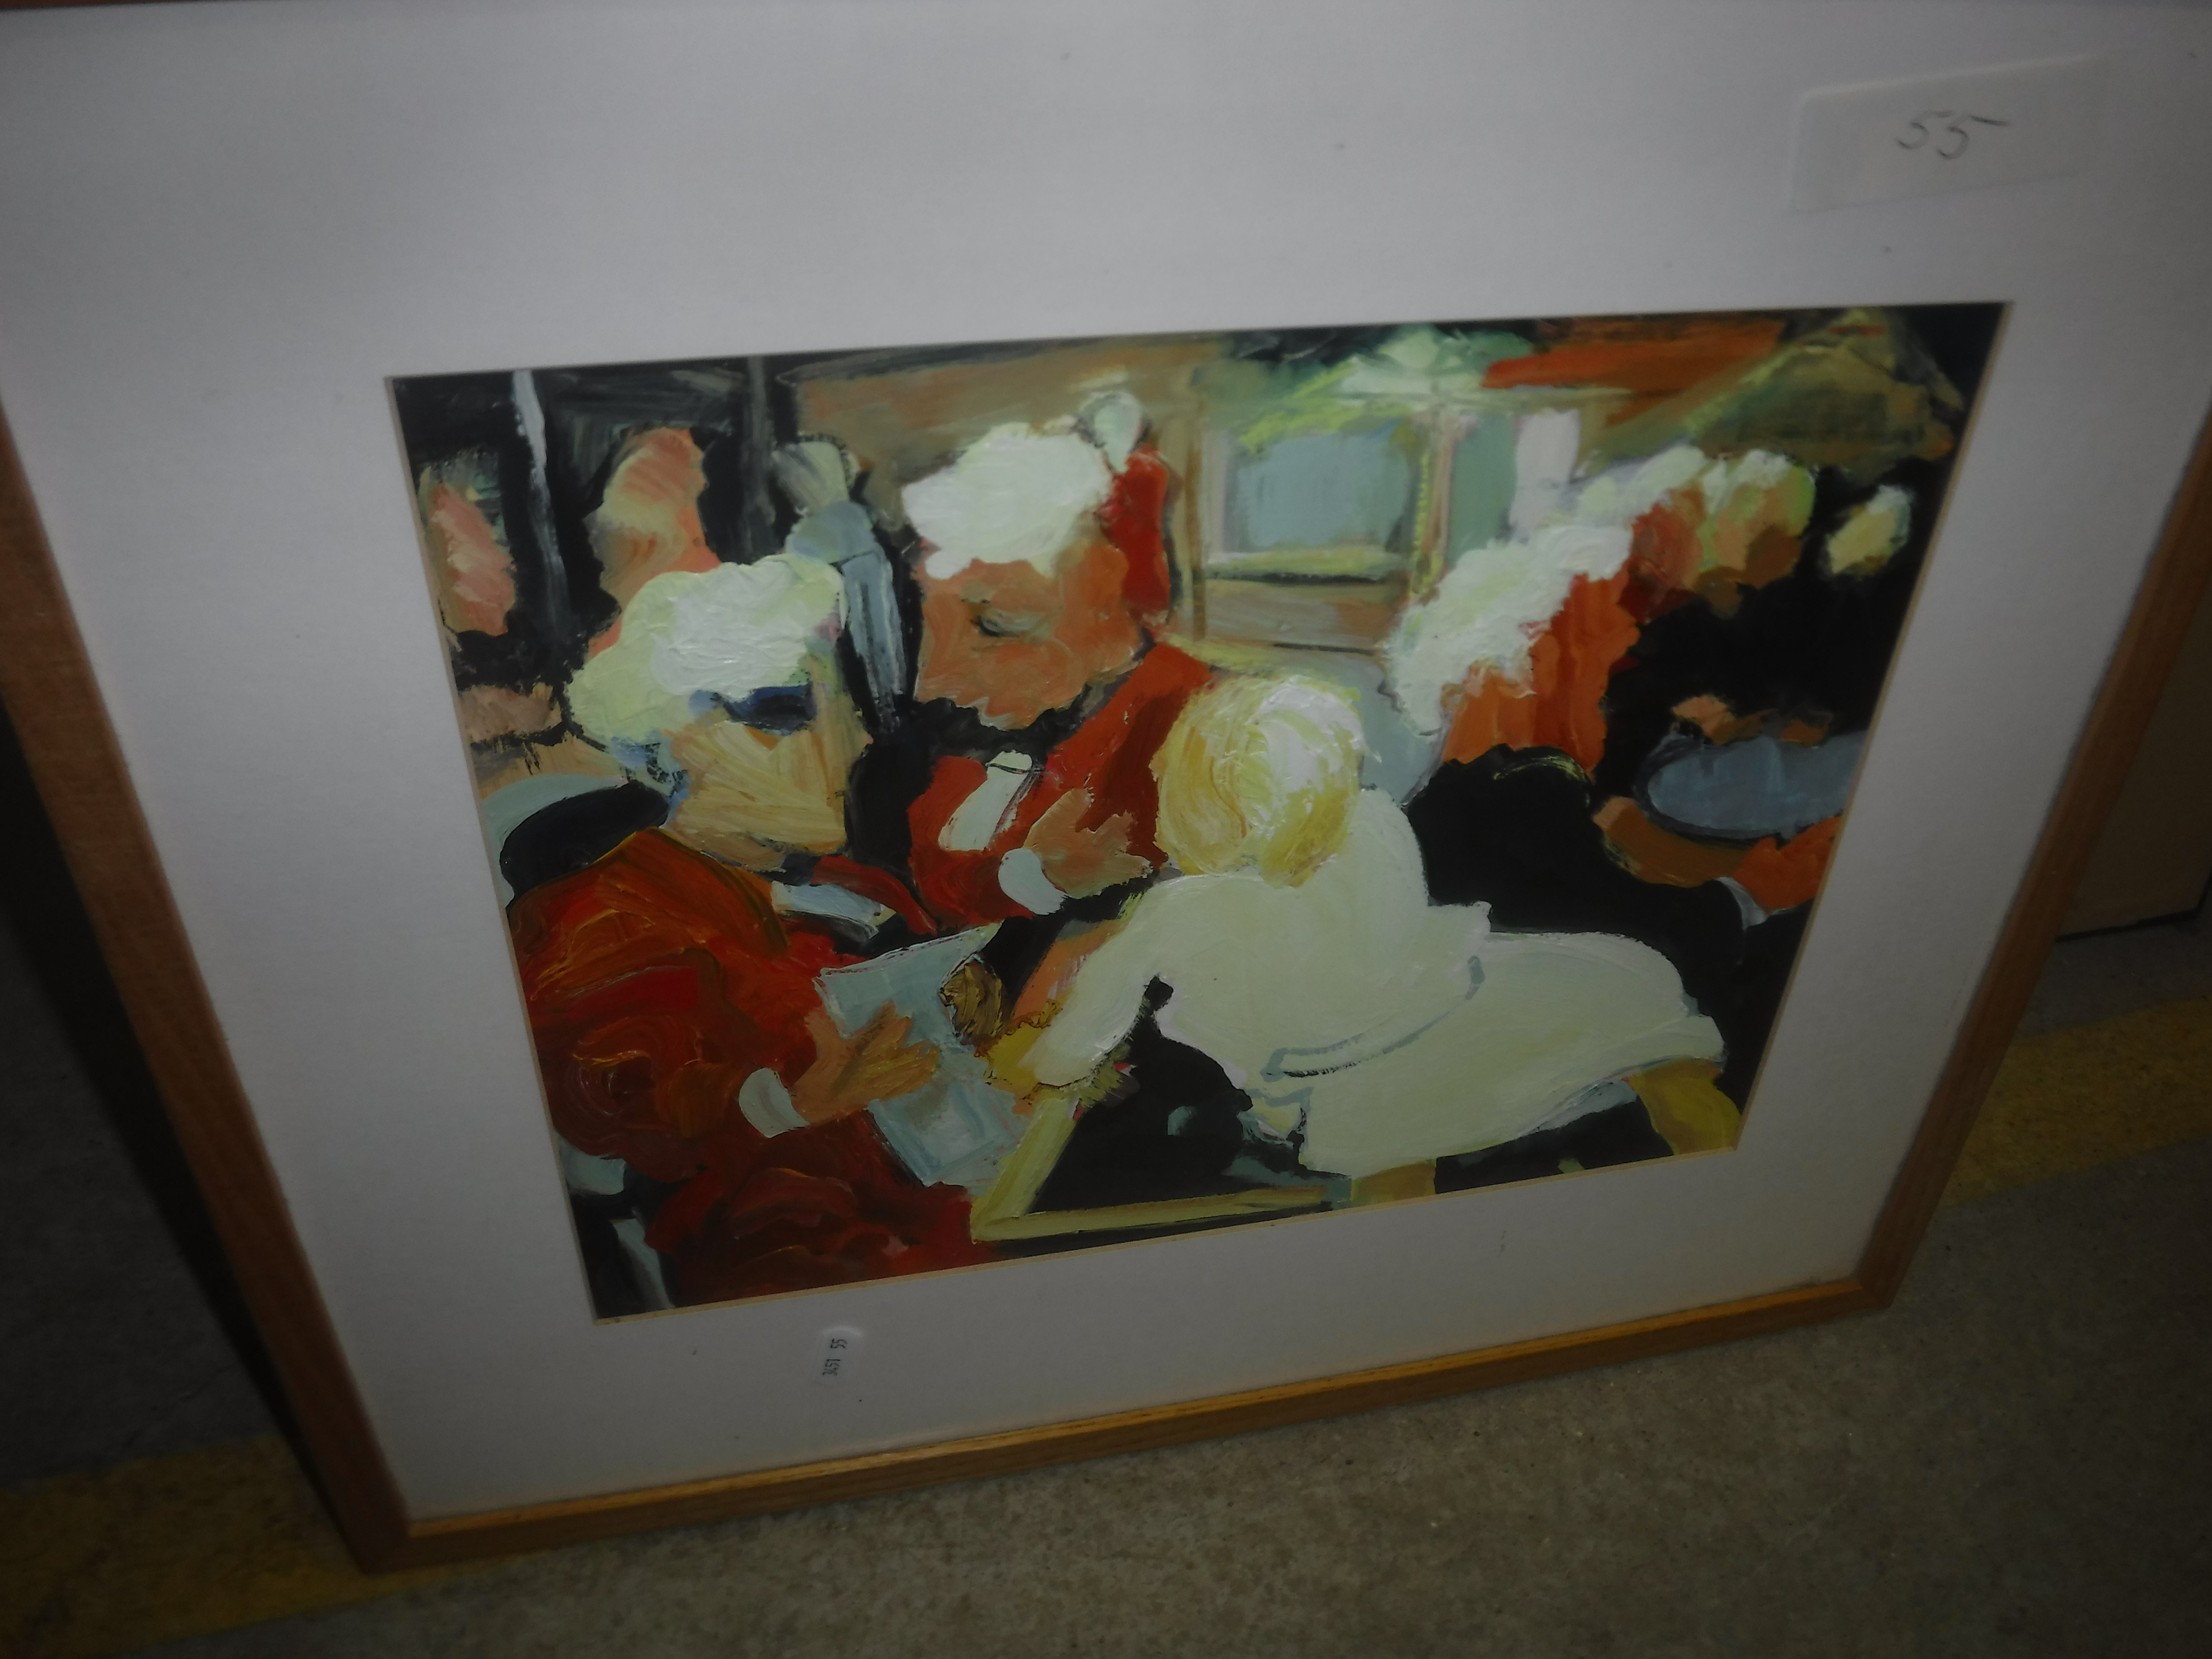 """DINZ """"Street scene with figures"""", monochrome wash, signed lower left, bears old label verso, - Image 2 of 4"""